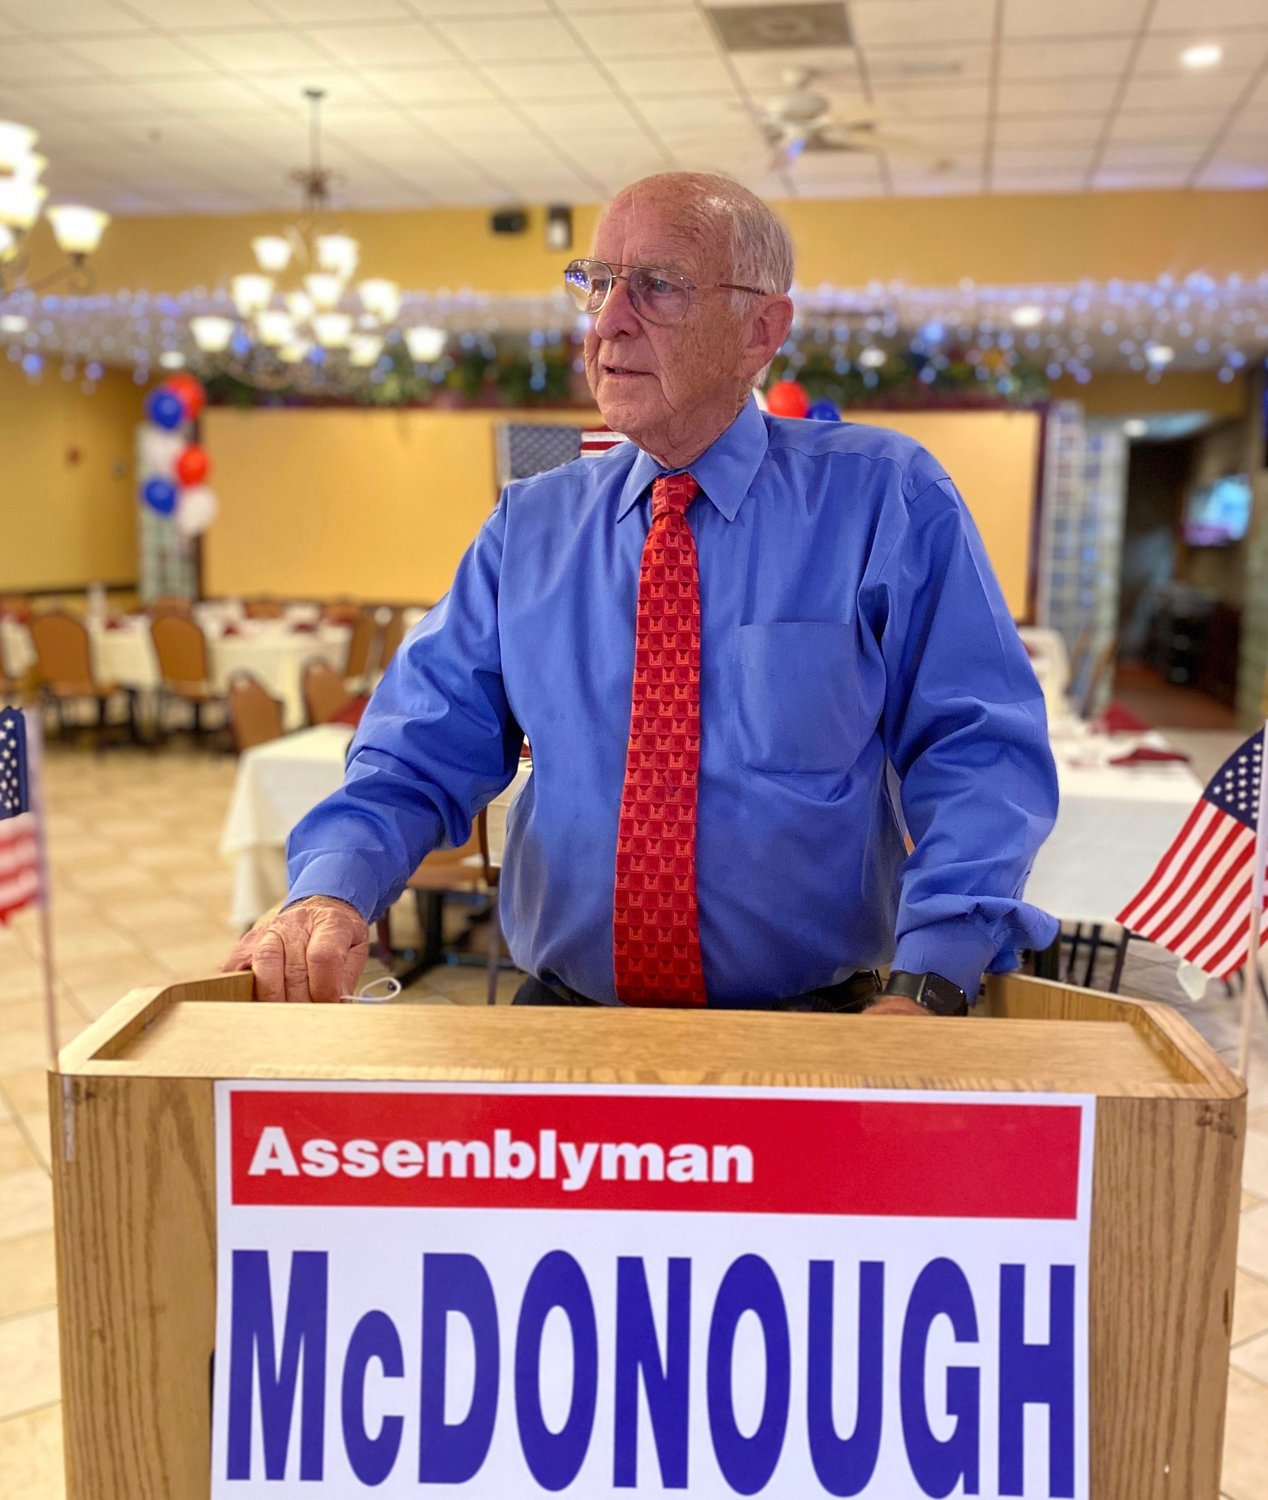 In New York's 14th Assembly District, longtime Assemblyman David McDonough, a Republican from North Merrick, retained his seat in Albany, winning 58 percent of the vote.